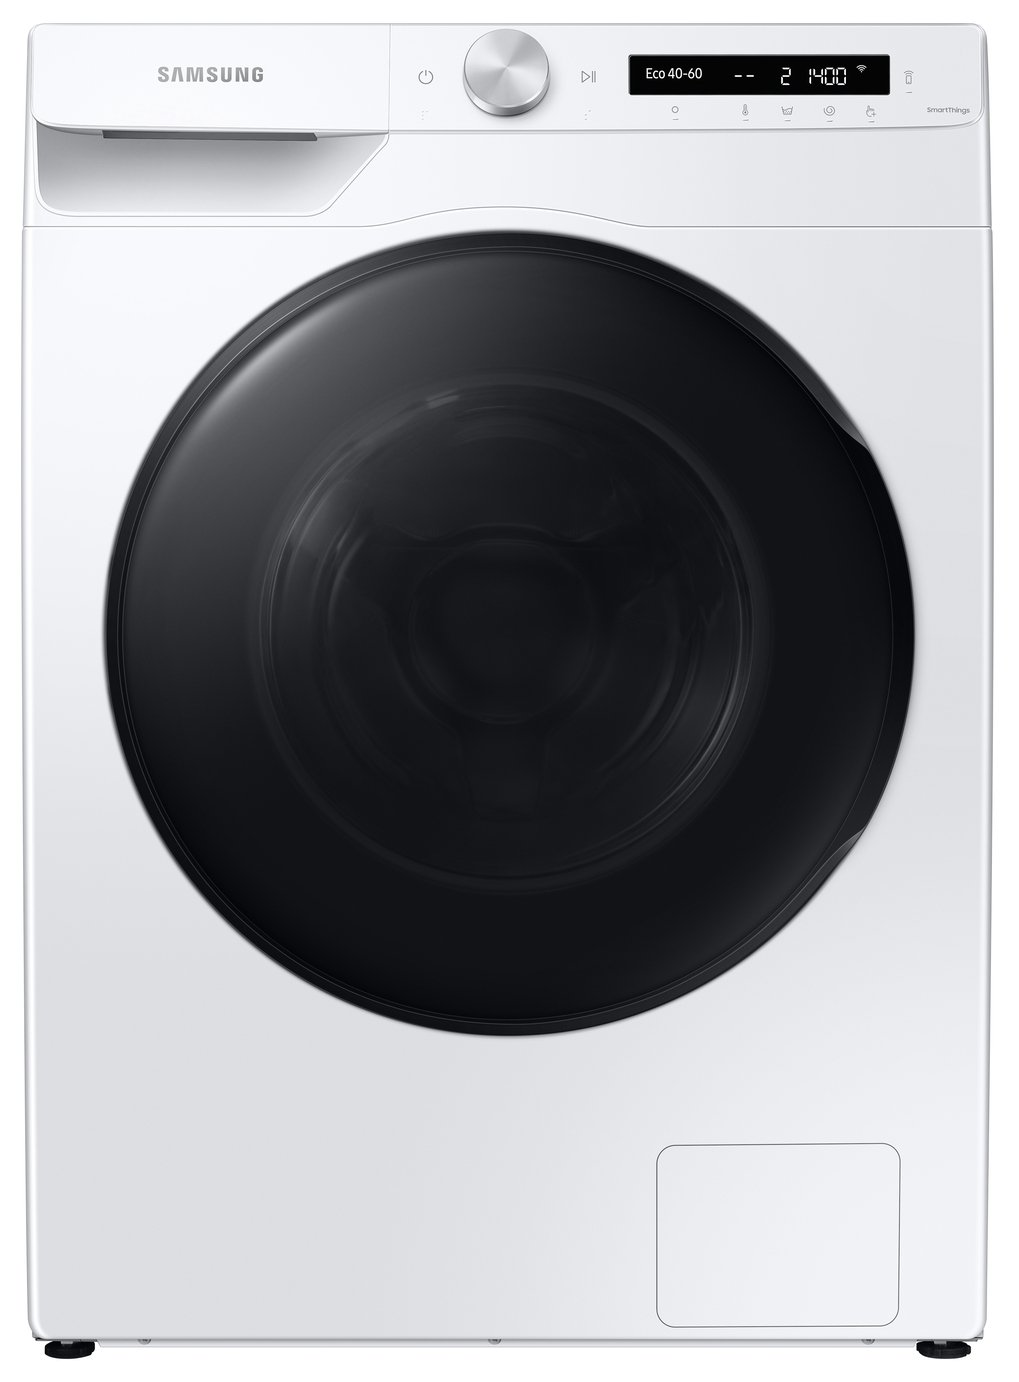 WD90T534DBW 9kg Wash 6kg Dry 1400rpm Washer Dryer